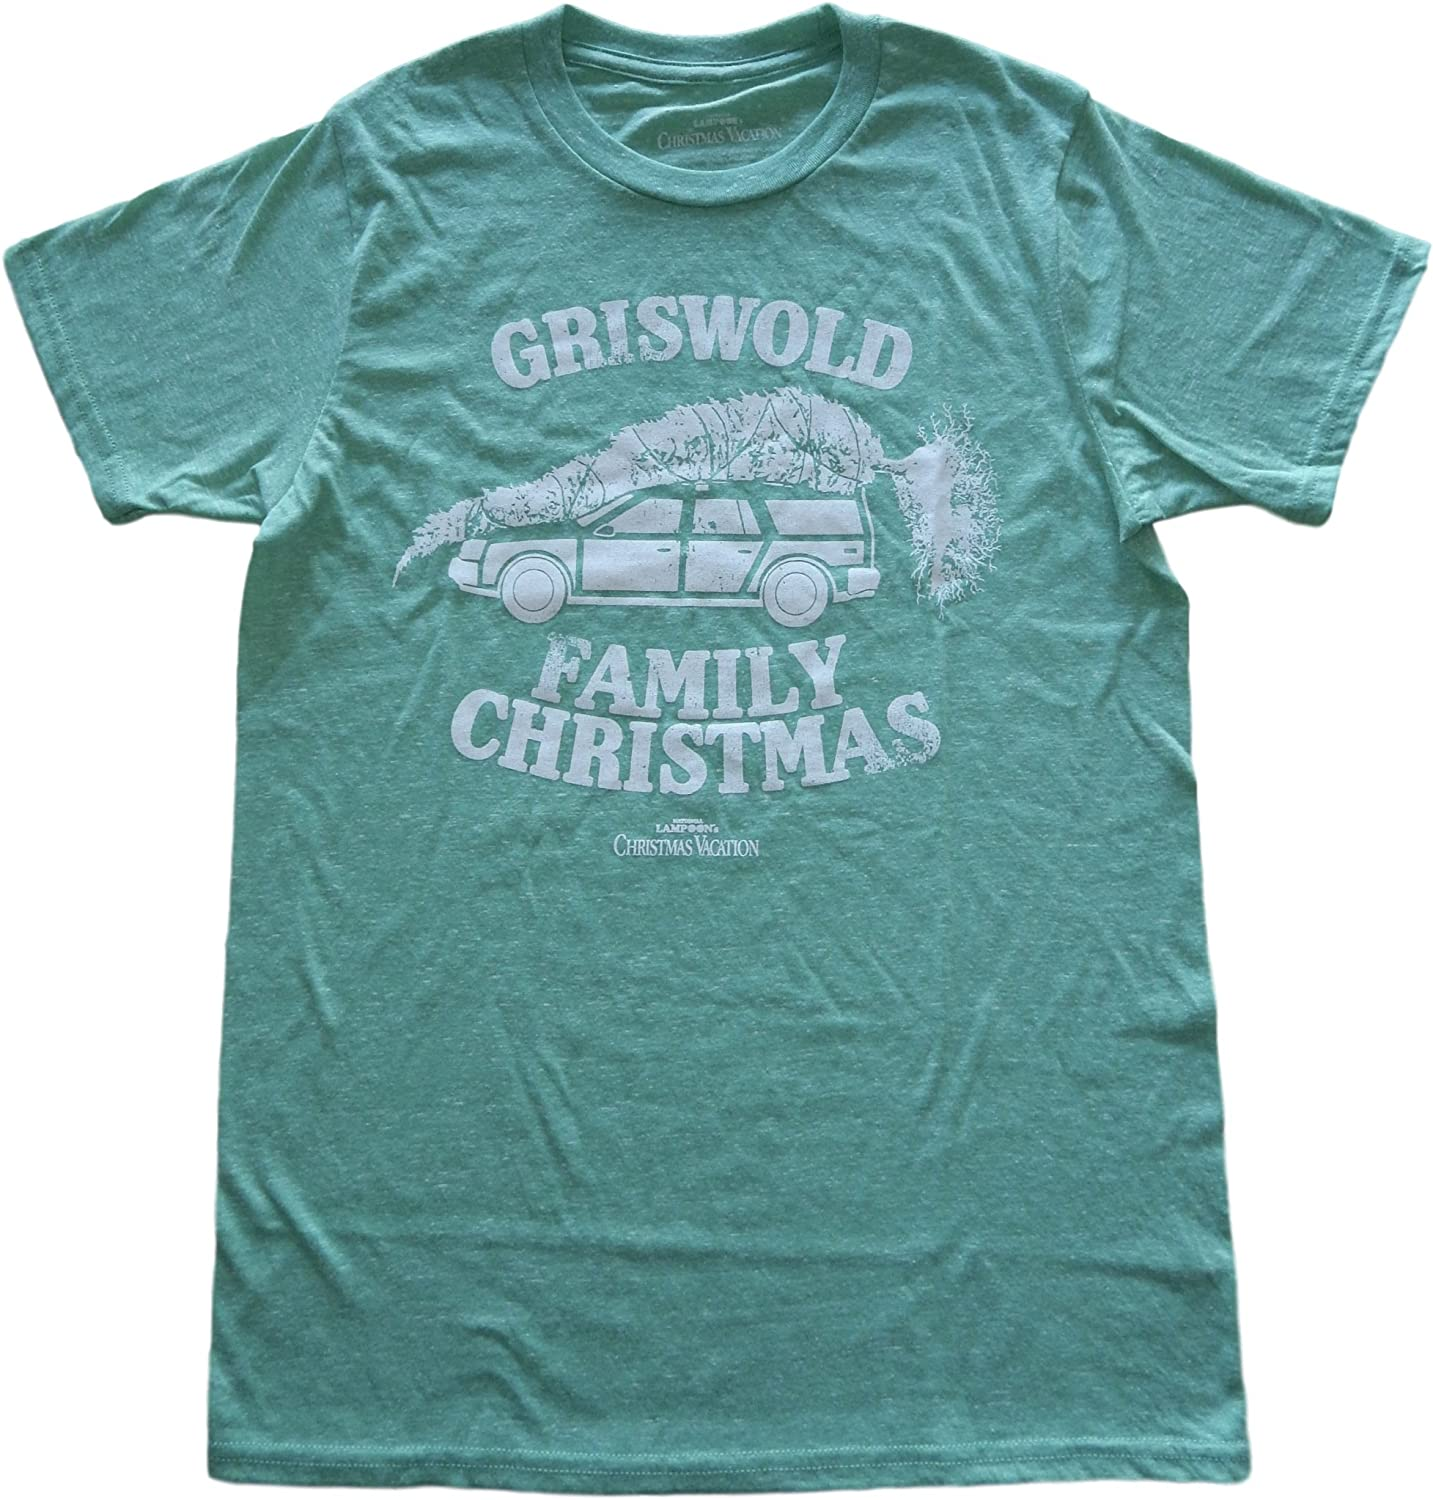 GRISWOLD FAMILY CHRISTMAS T-SHIRT National Lampoons Vacation XMAS Tee Top Mens